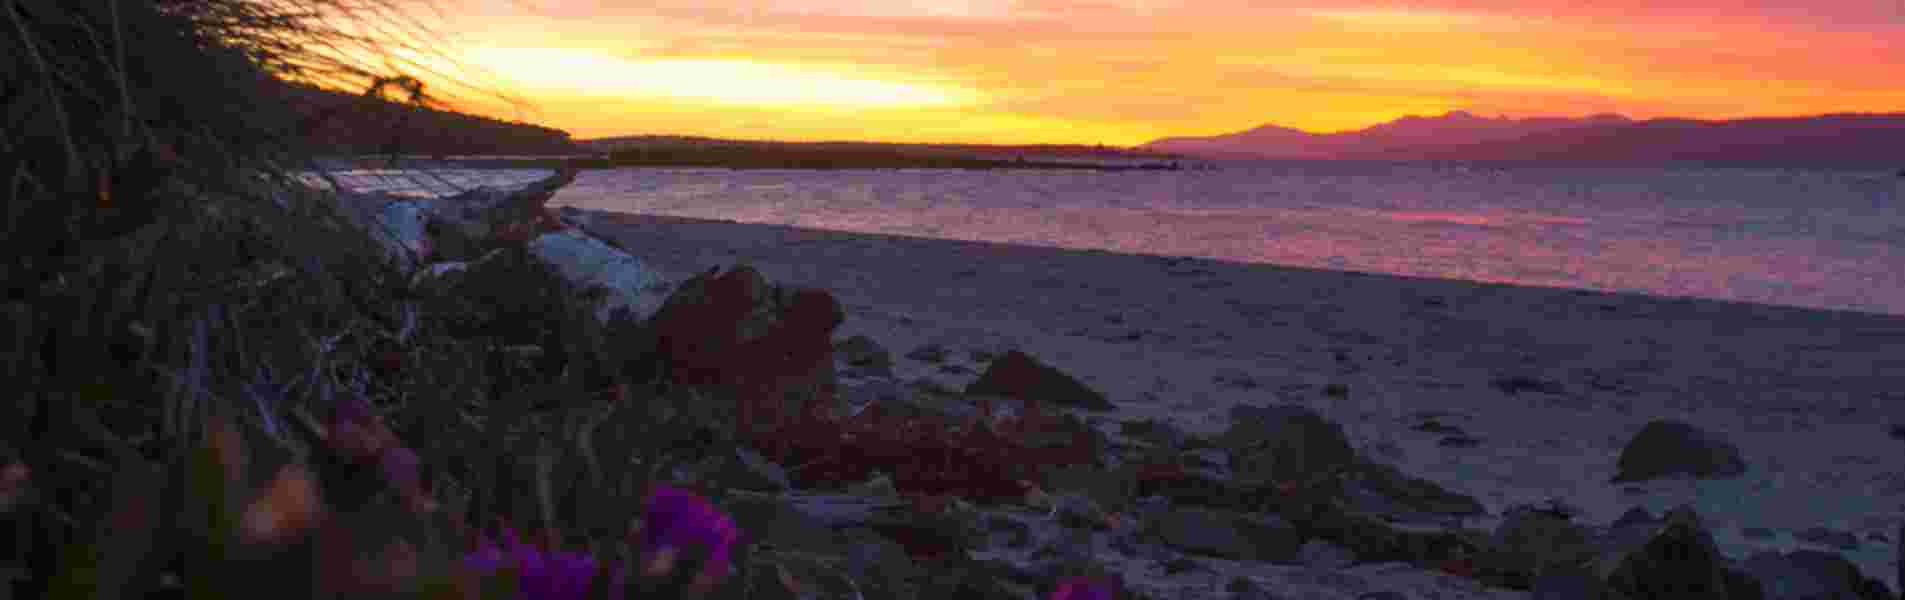 Top 10 different things to do in Tasmania header image